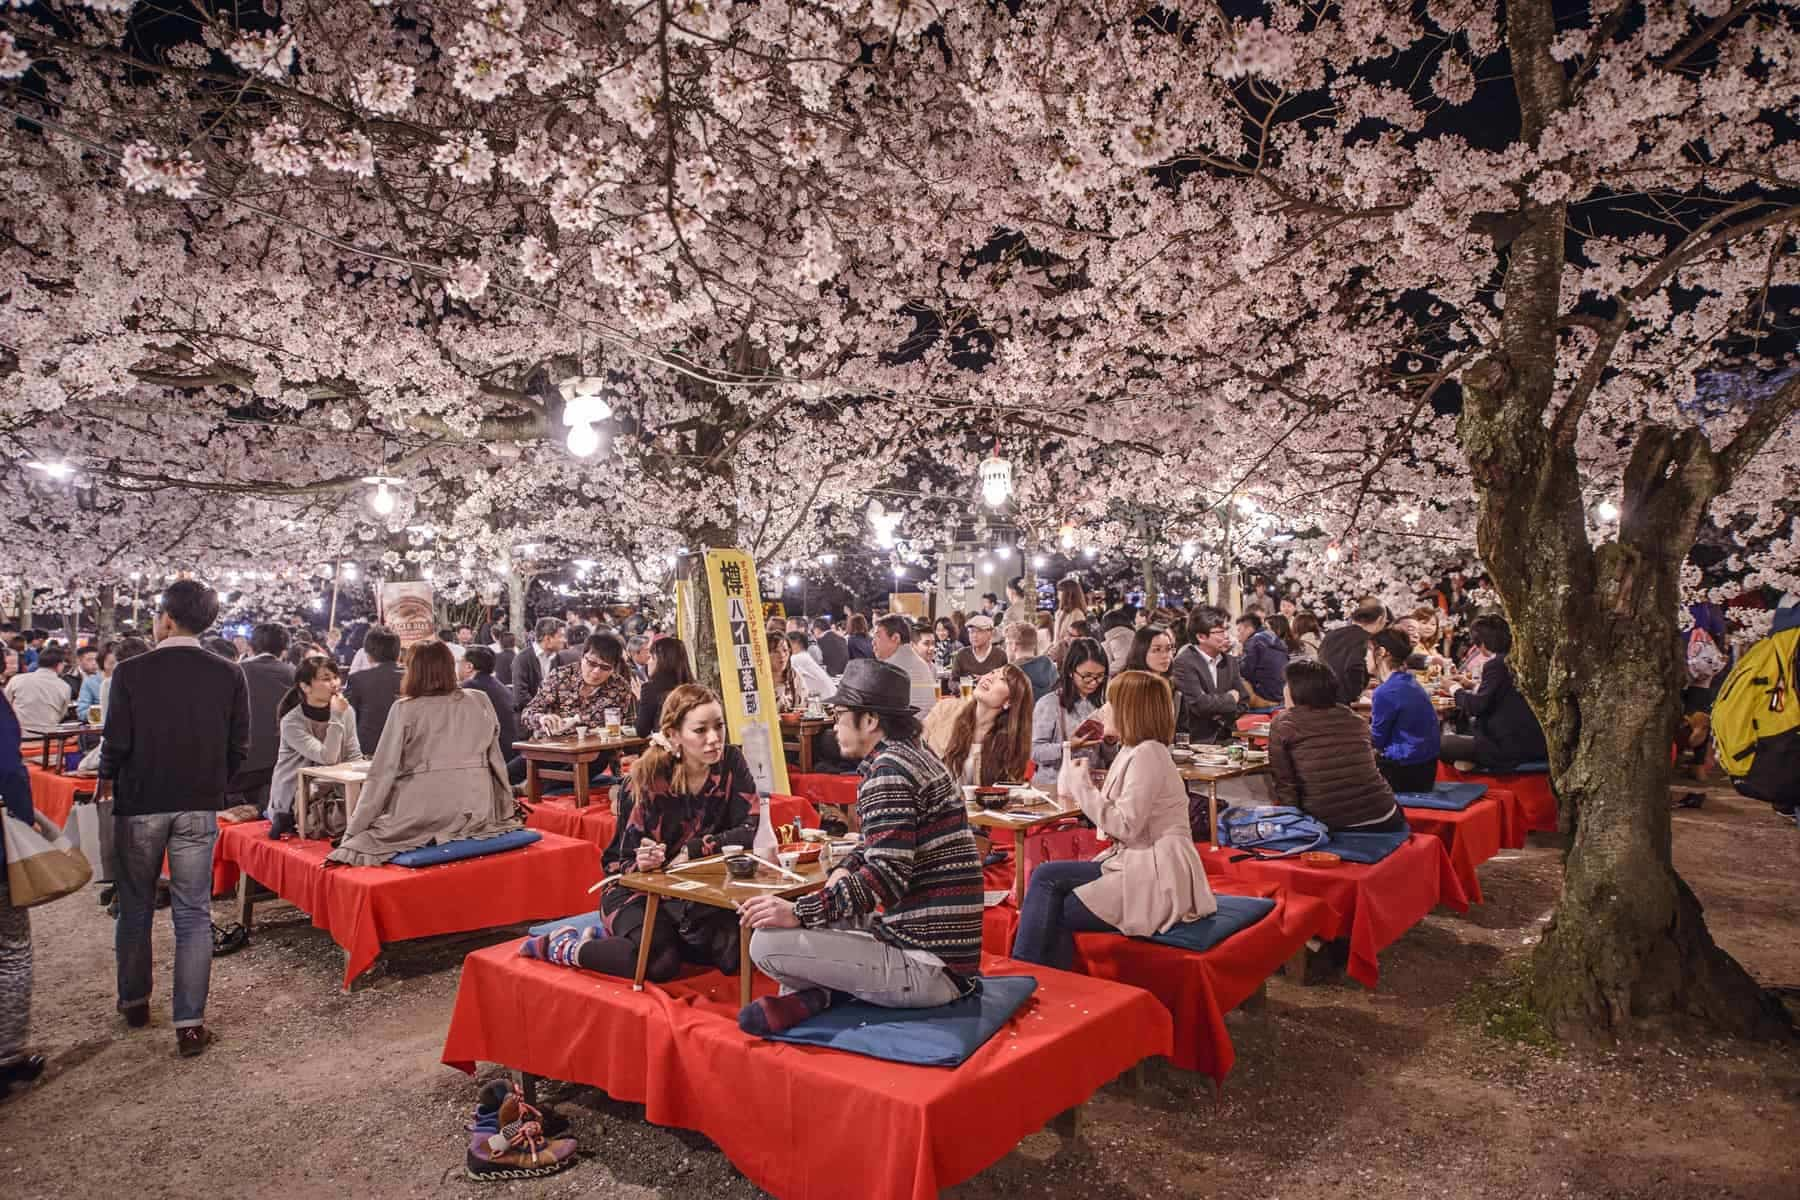 KYOTO, JAPAN. People enjoy the spring season by partaking in nighttime Hanami festivals. The annual festivals coincide with the seasonal blooming of the cherry blossoms.